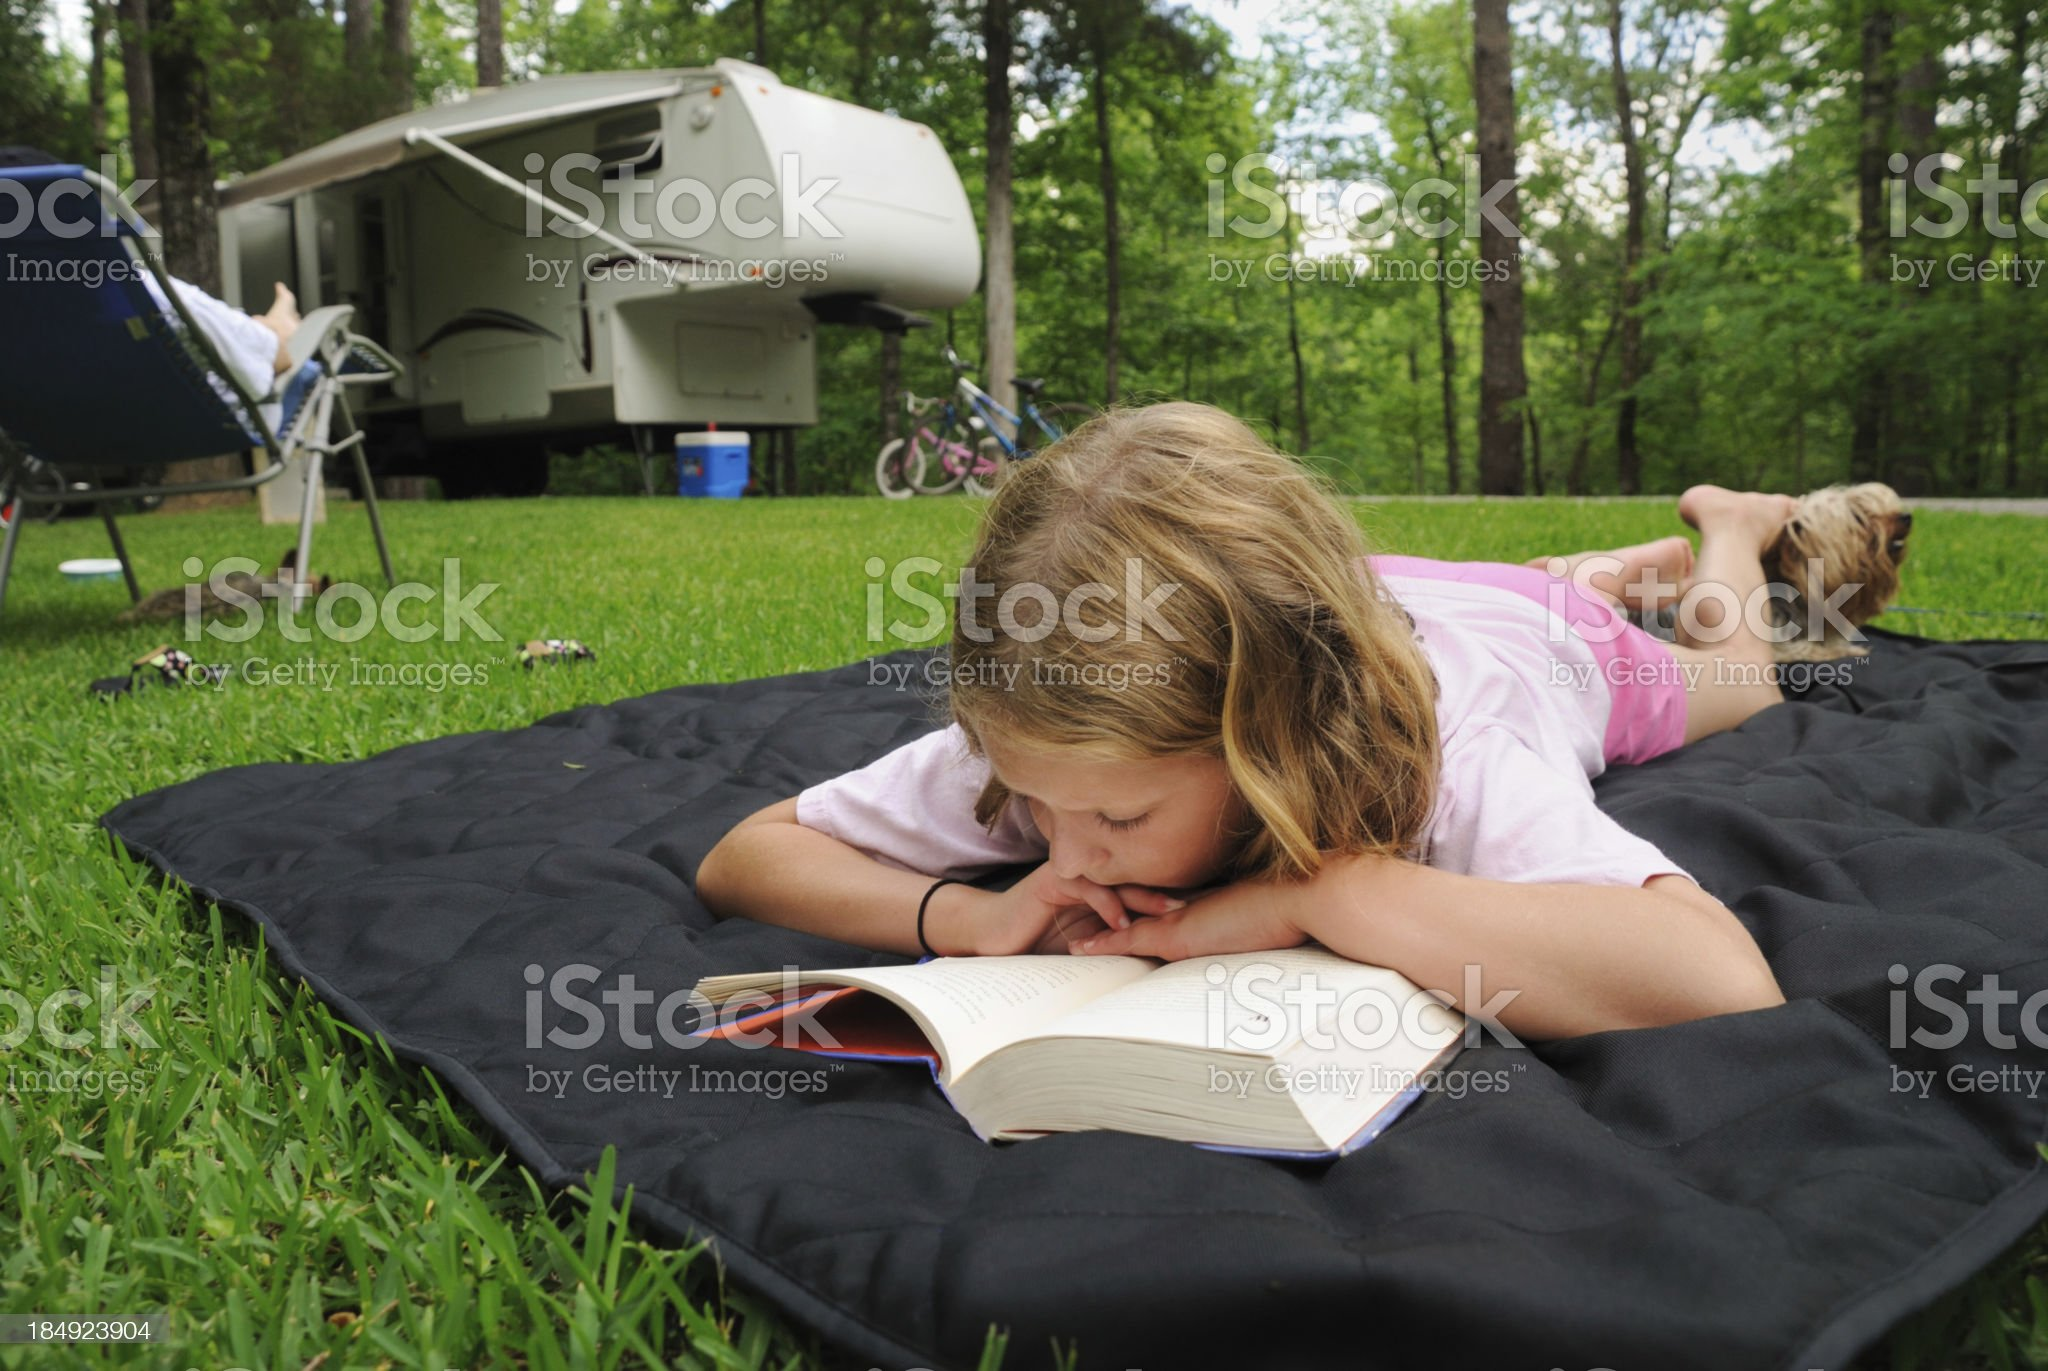 Young person reading on ground in campground royalty-free stock photo